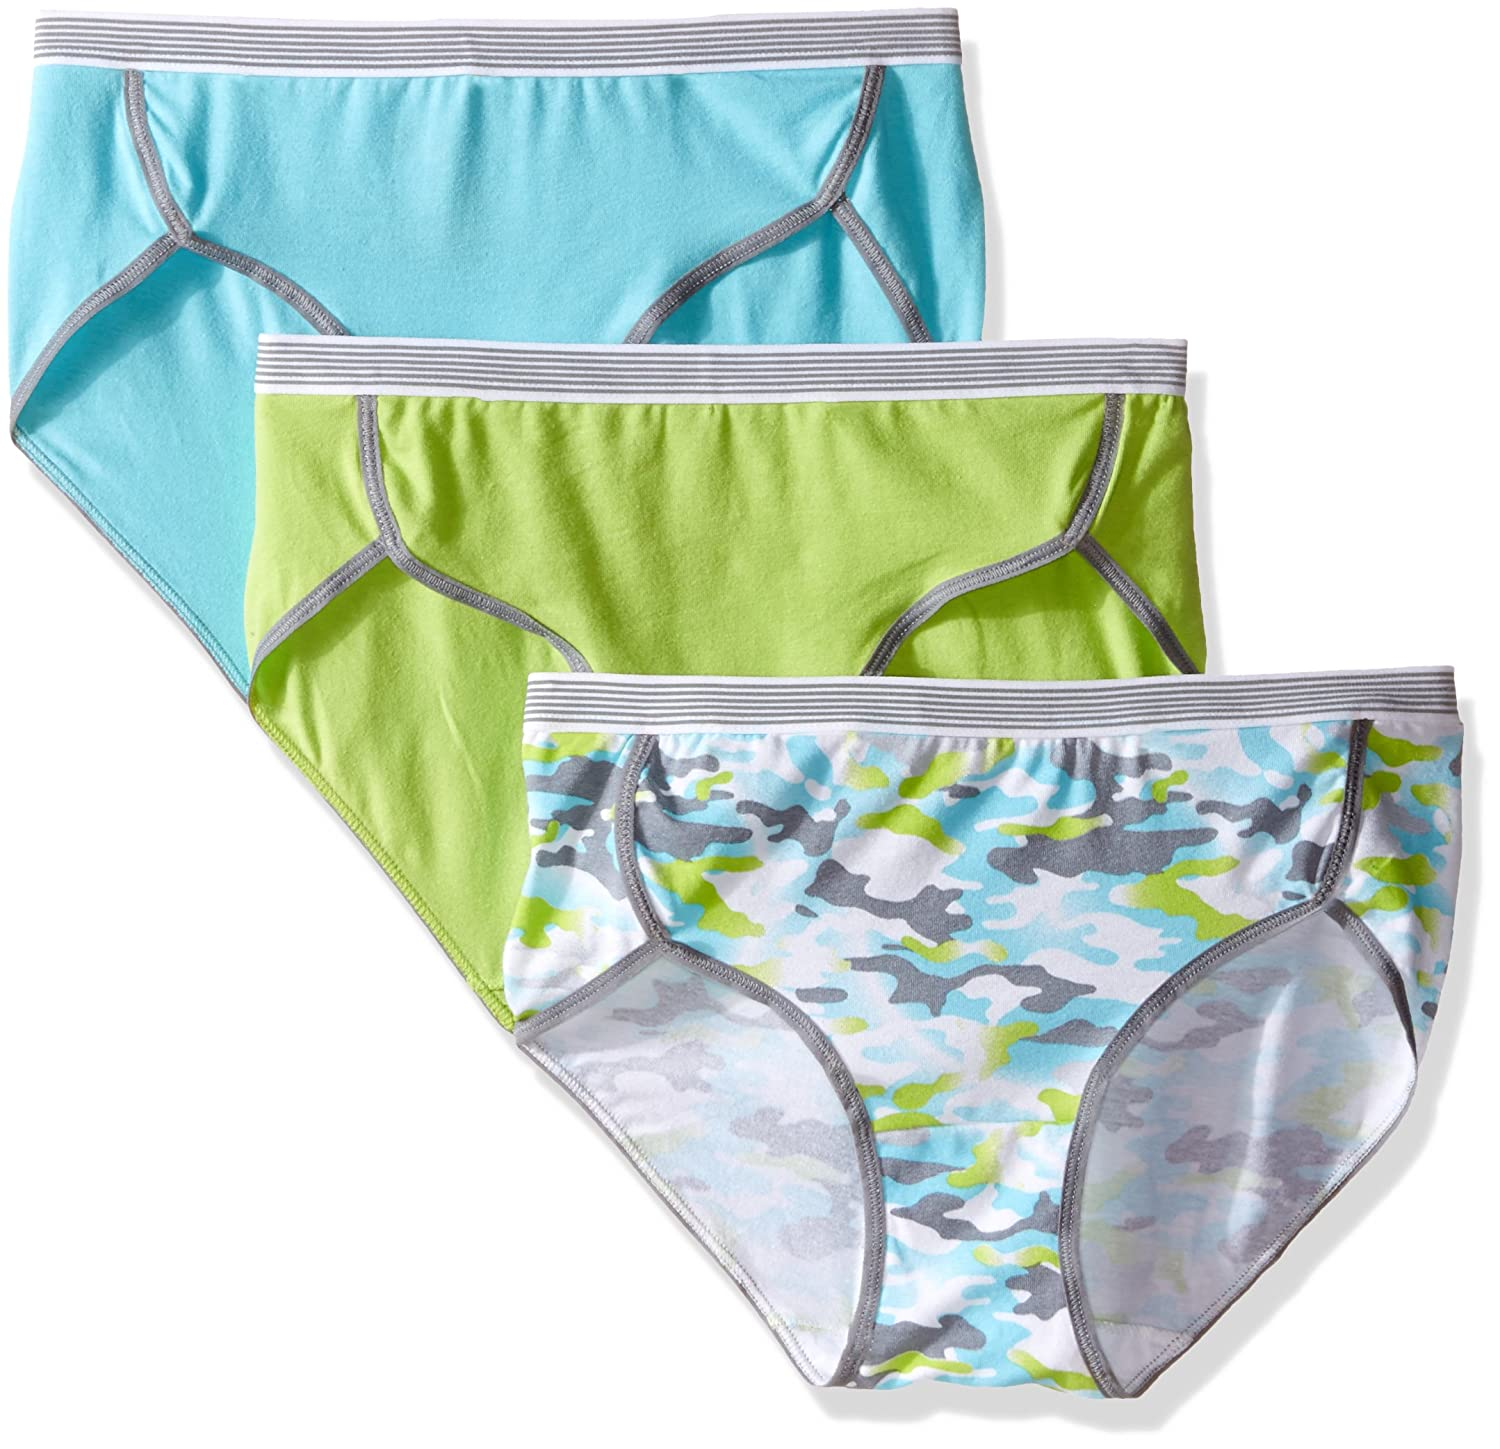 d399a81e7388 Online Cheap wholesale Hanes Womens X-Temp Constant Comfort Hipster Panty  (Pack of 3) Hipsters Suppliers